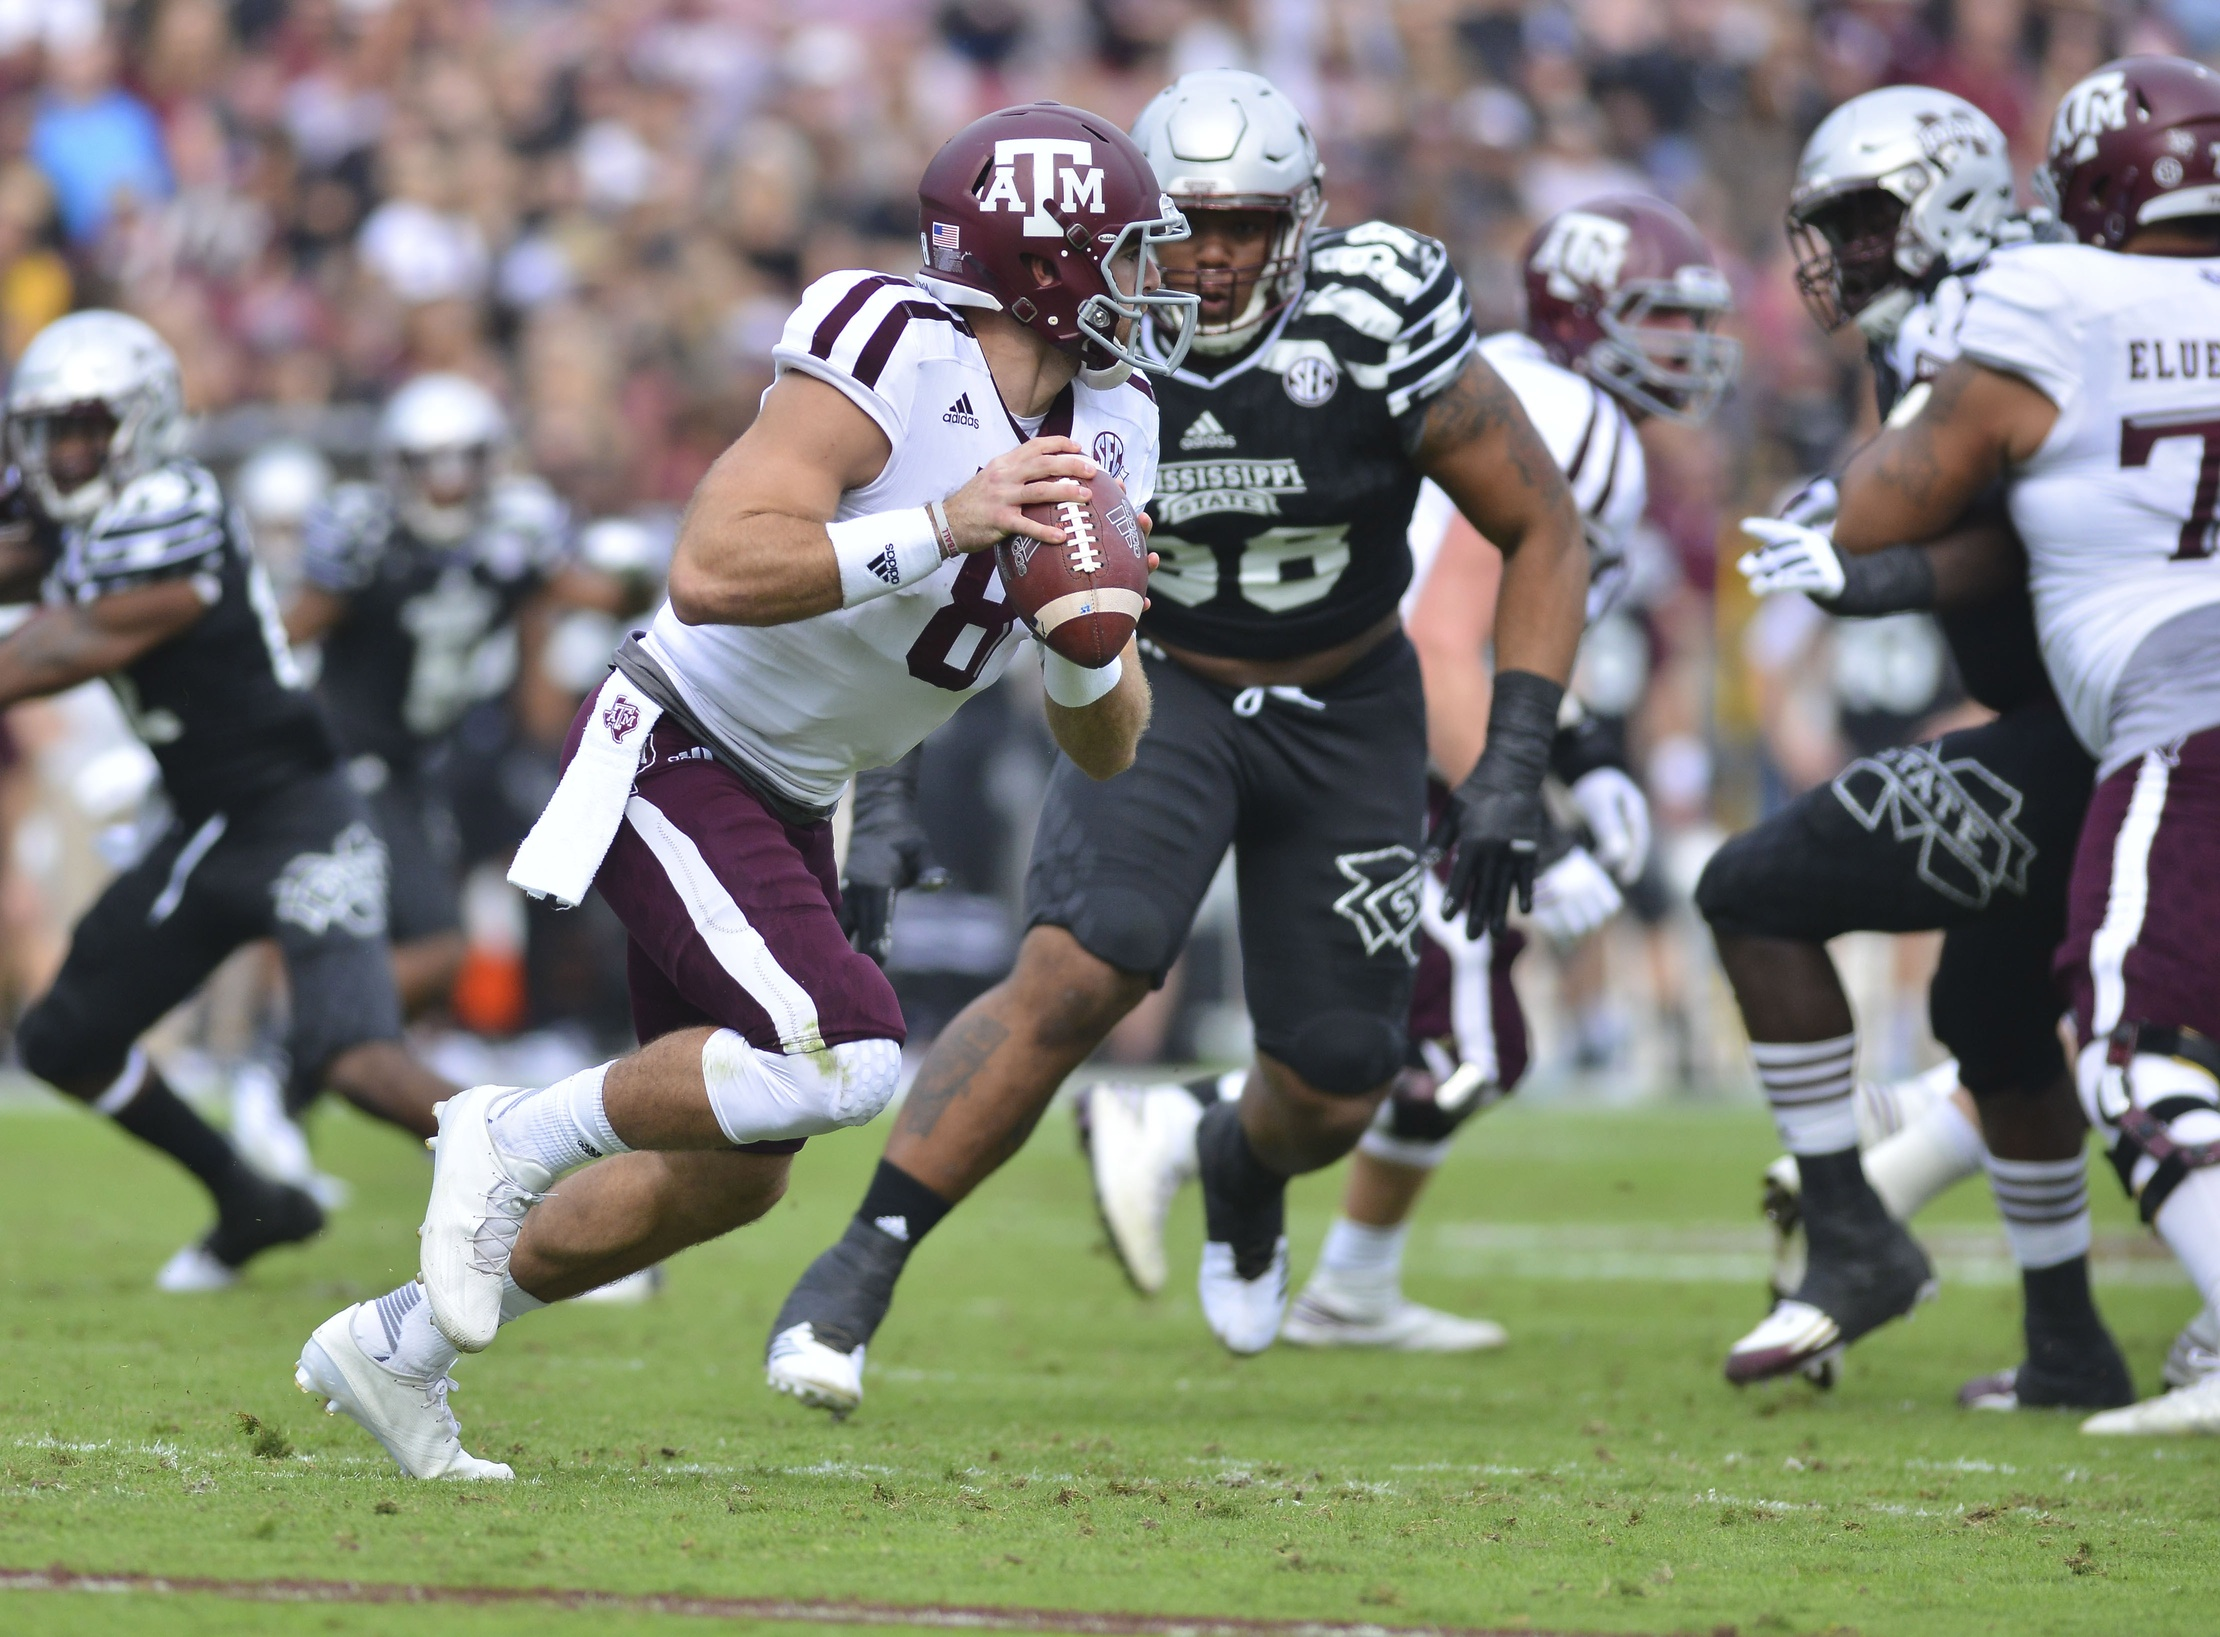 Nov 5, 2016; Starkville, MS, USA; Texas A&M Aggies quarterback Trevor Knight (8) moves in the pocket during the first quarter against the Mississippi State Bulldogs at Davis Wade Stadium. Mandatory Credit: Matt Bush-USA TODAY Sports